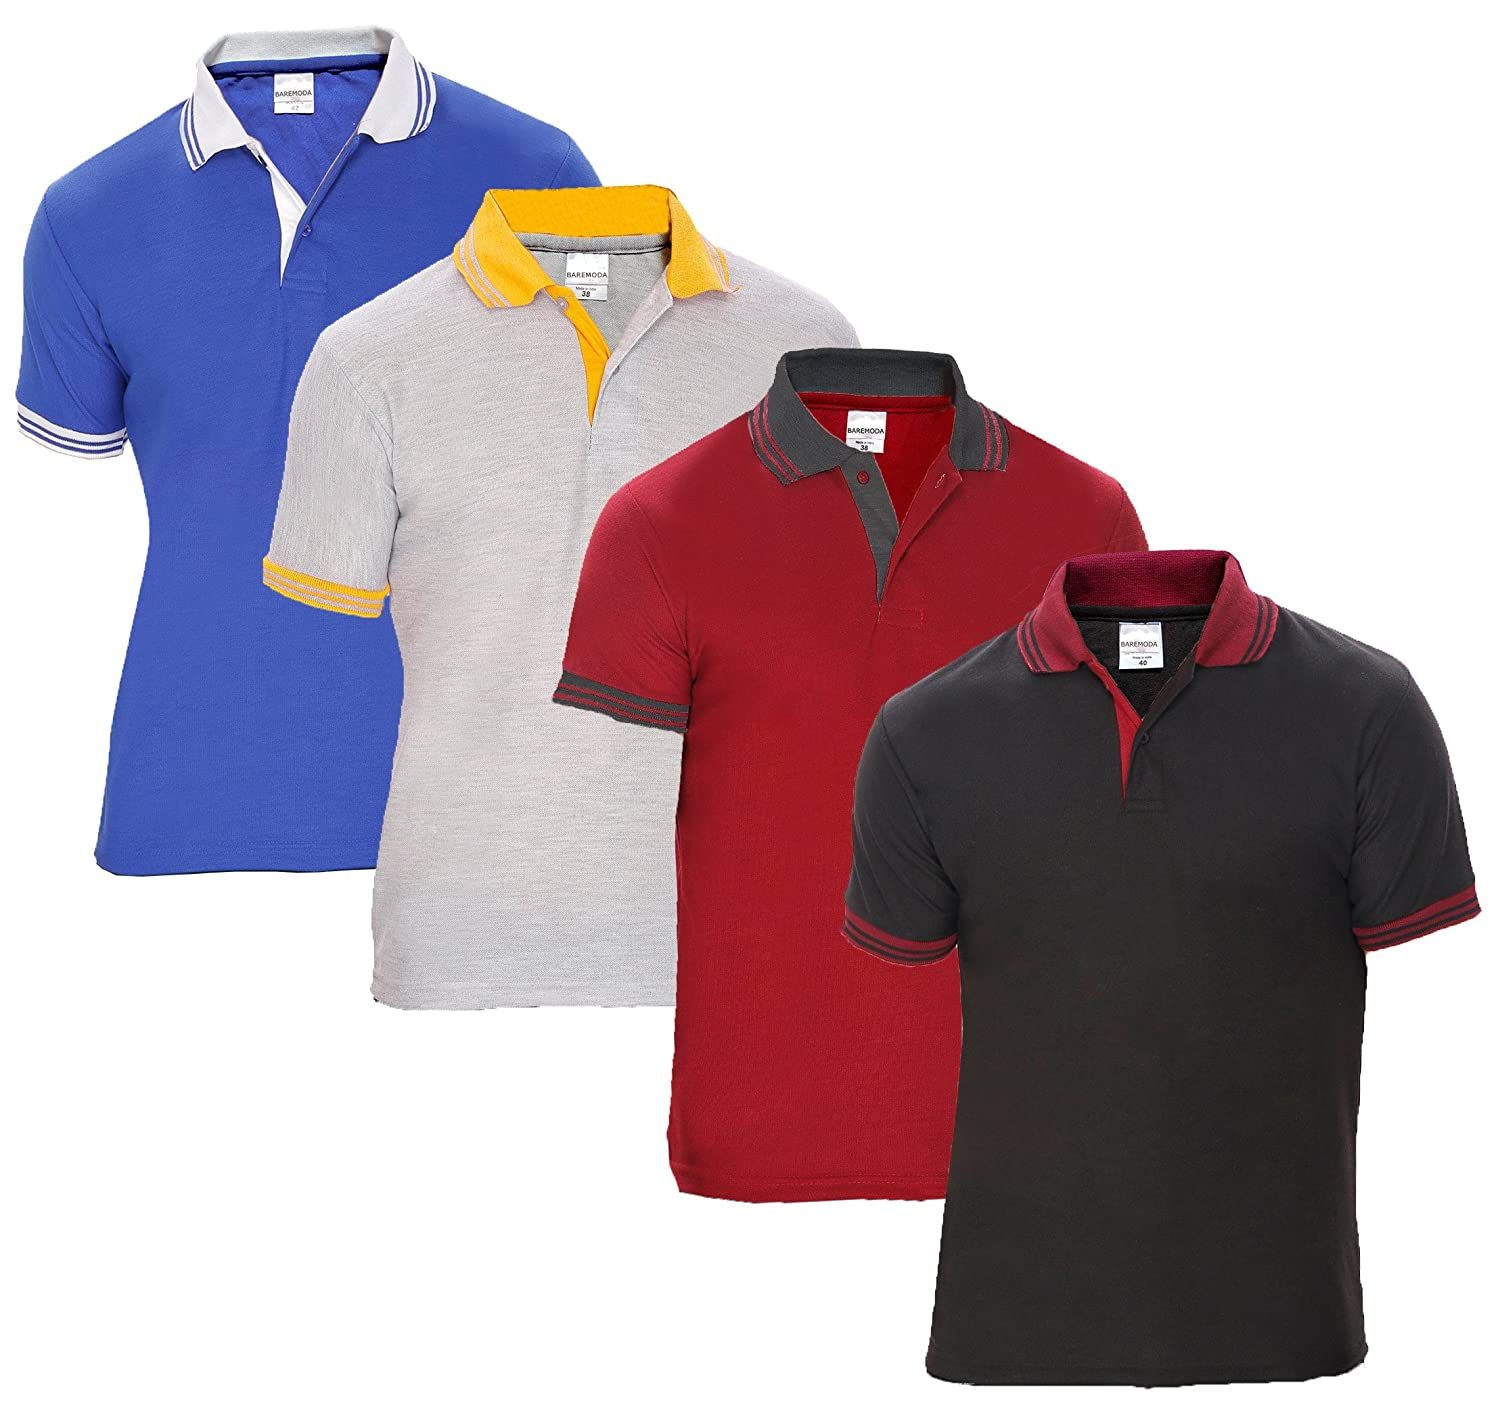 Black and white striped t shirt xxl - Baremoda Men S Polo T Shirt Black Maroon Grey And Blue Combo Pack Of 4